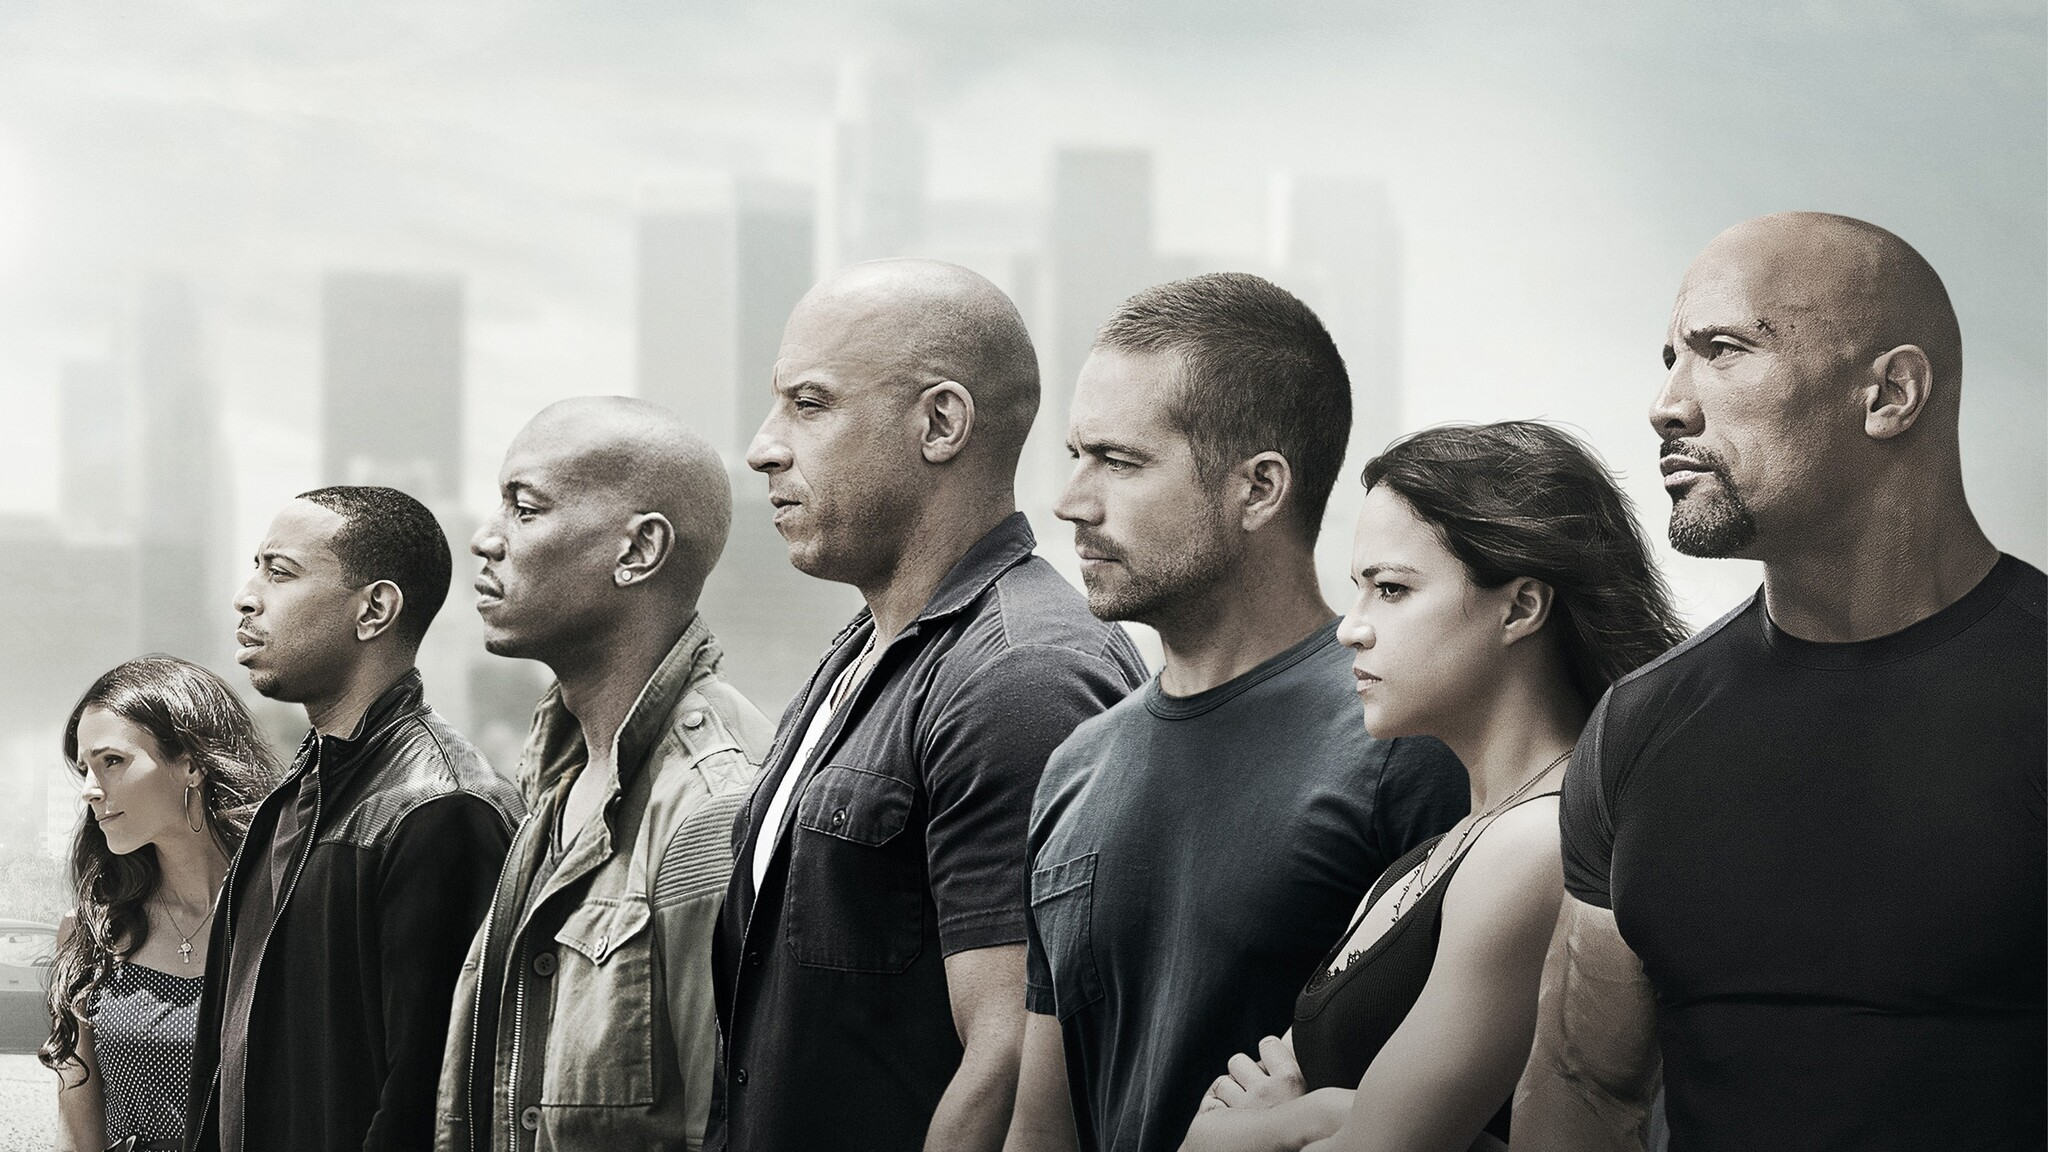 Fast And The Furious 7 Wallpapers: 2048x1152 Fast And Furious 7 2015 2048x1152 Resolution HD